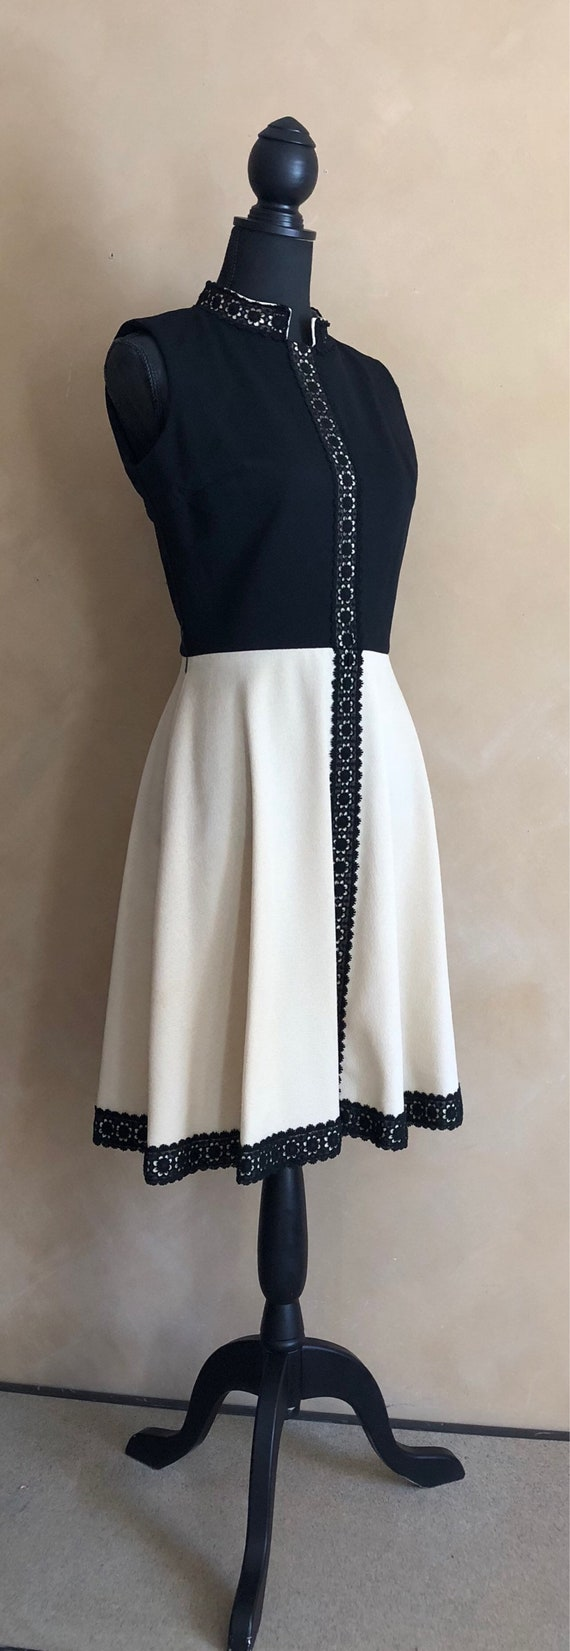 Vintage 60's Spring Dress with Black Daisy Lace Trim